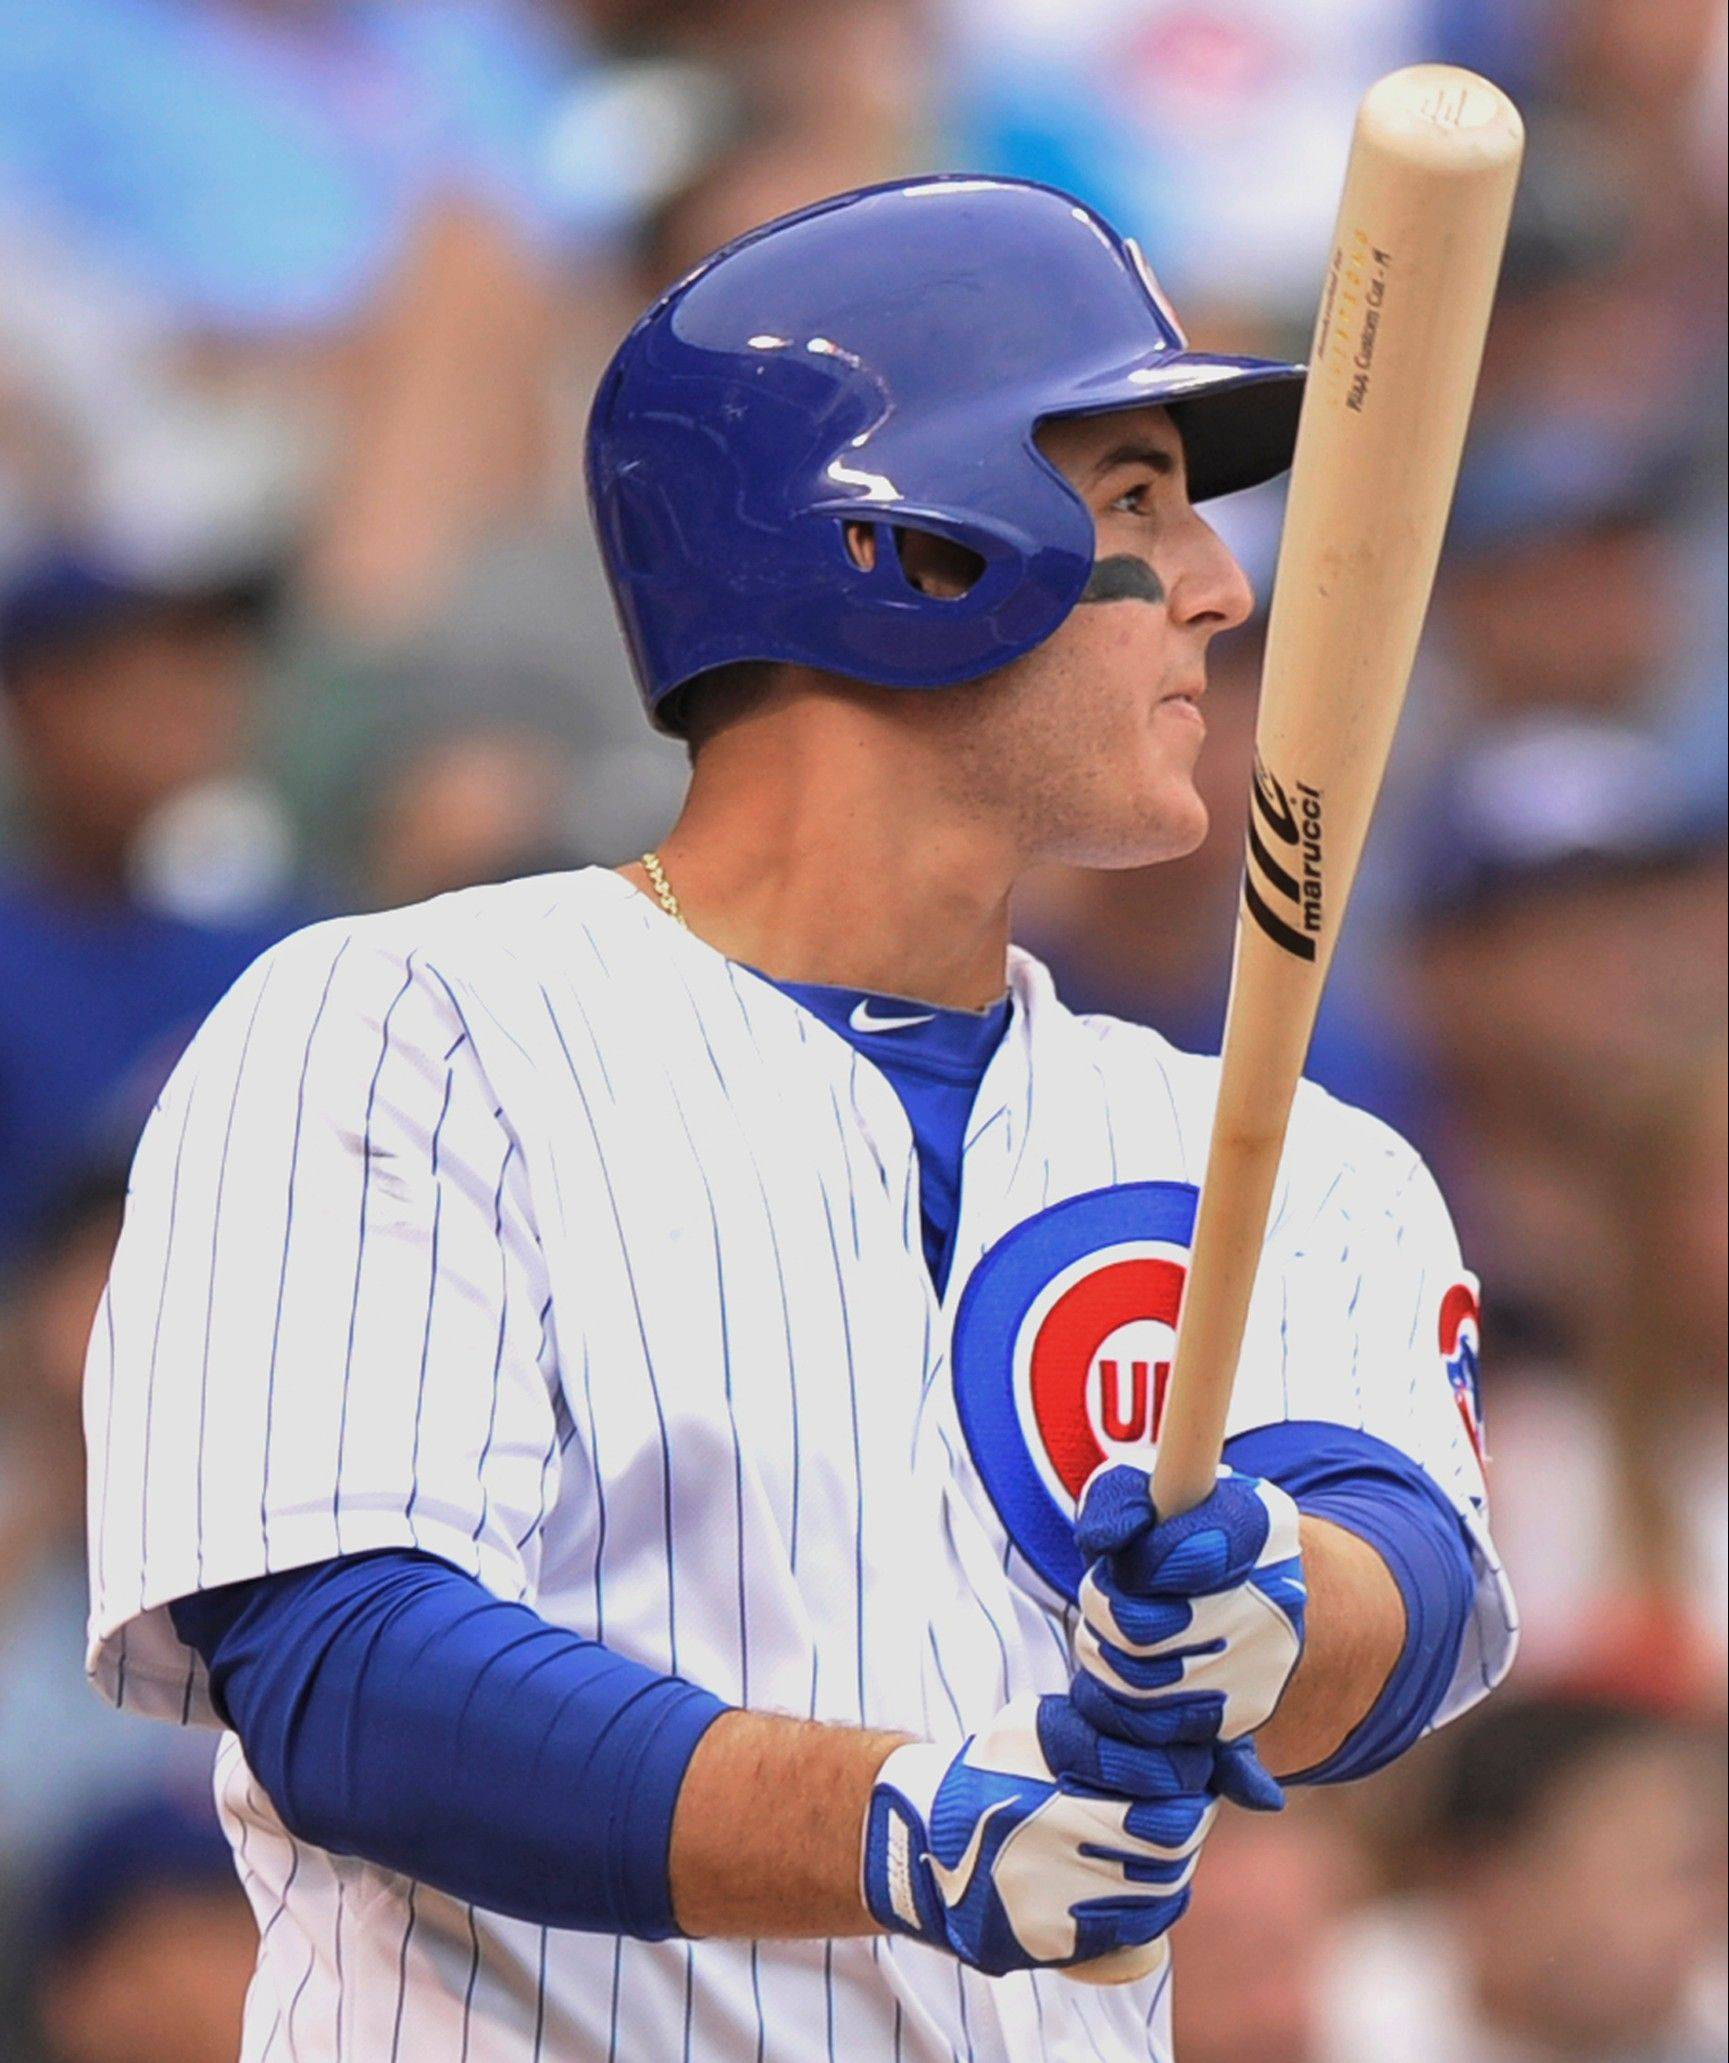 The Cubs� Anthony Rizzo admires his 2-run walkoff home run in the 10th inning Sunday at Wrigley Field.